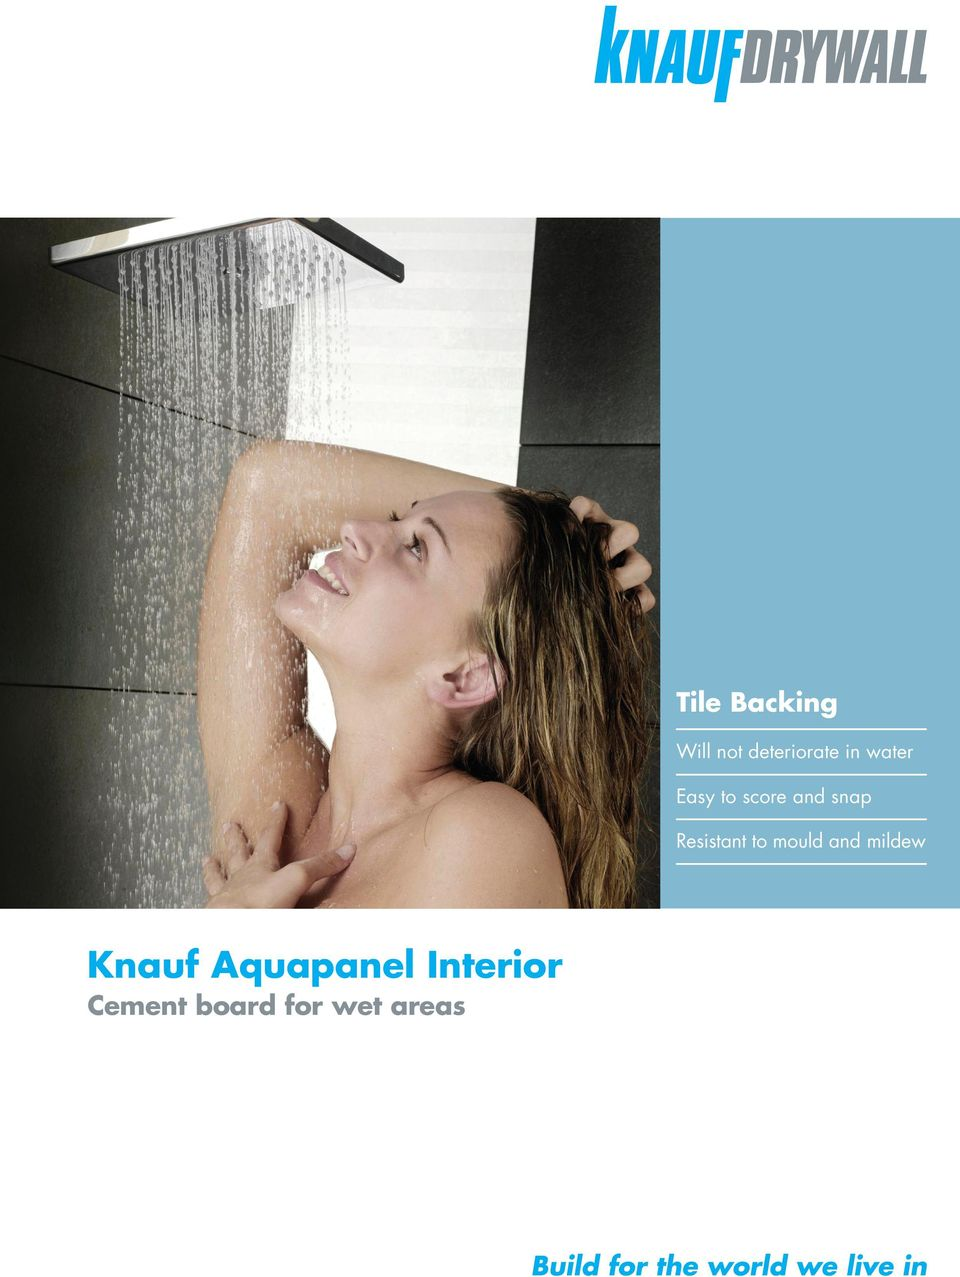 Resistant to mould and mildew Knauf